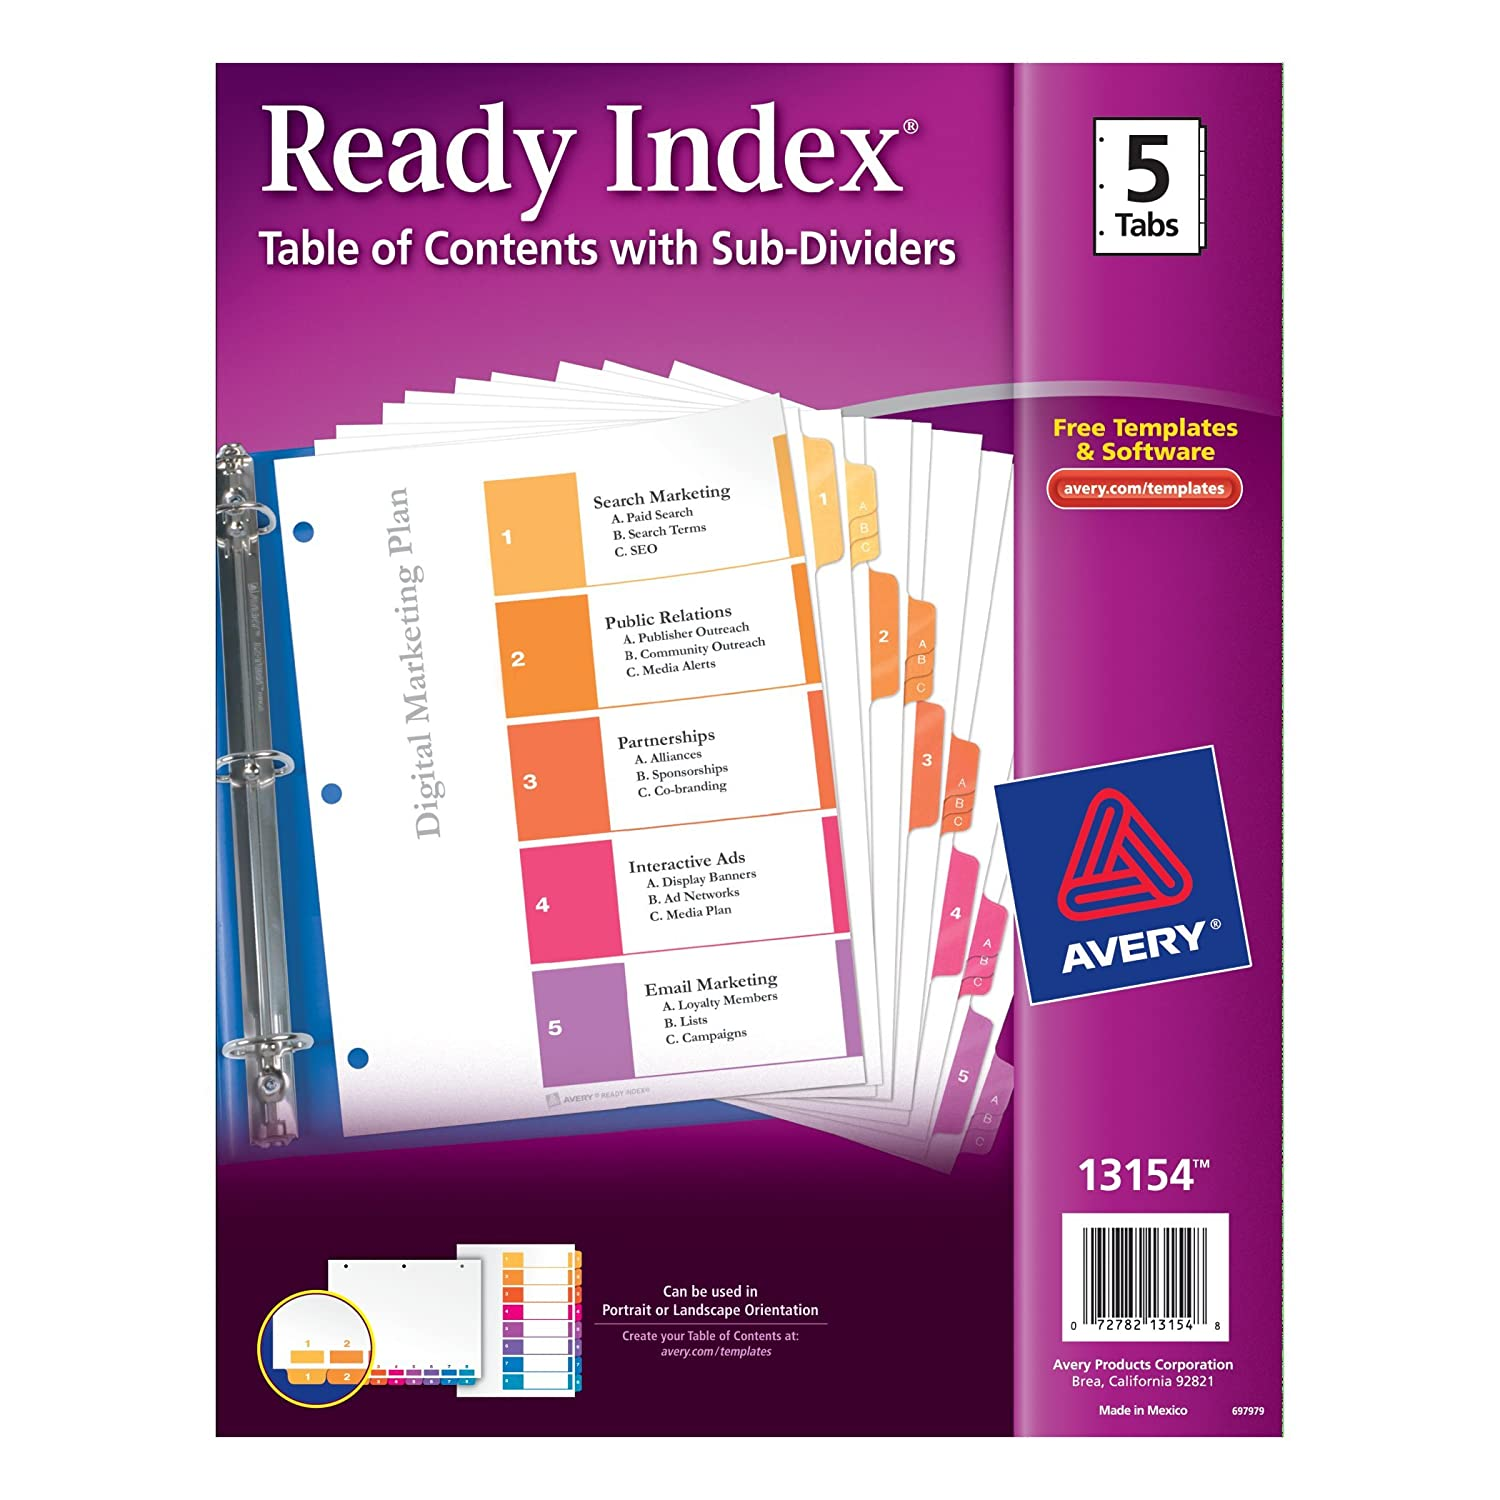 Amazon Avery Ready Index Table Of Contents Dividers With Sub